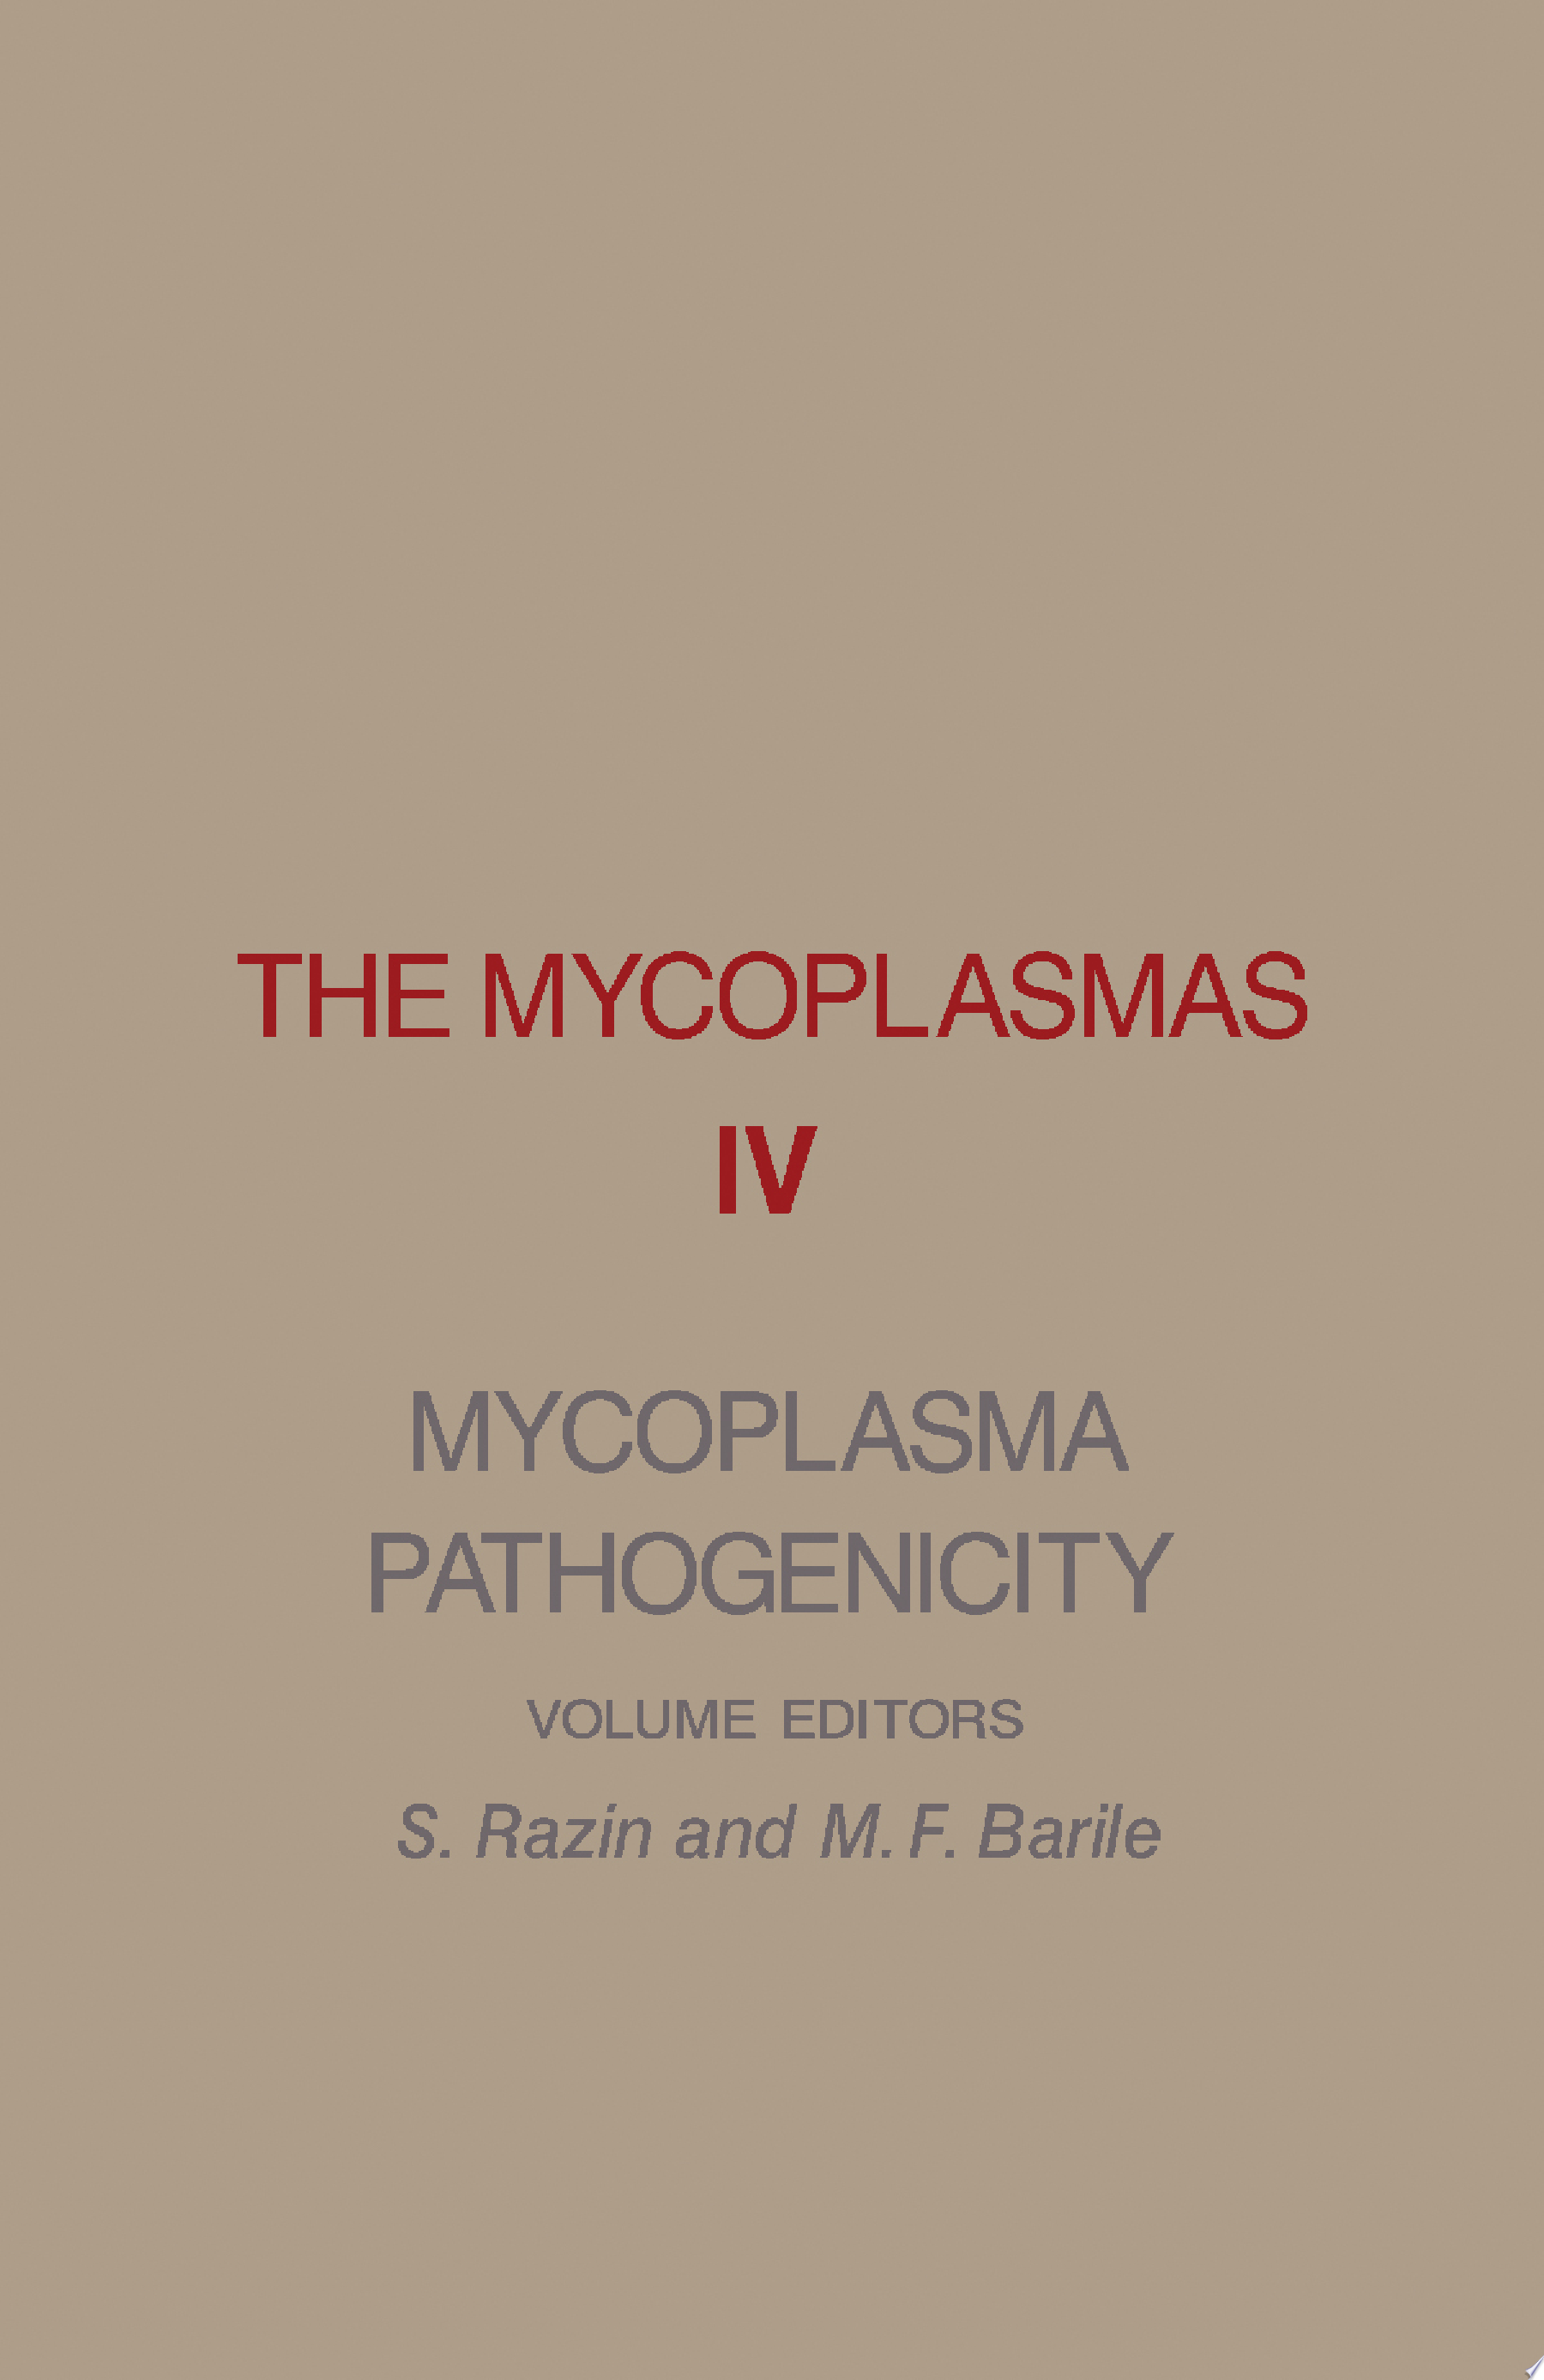 Mycoplasma Pathogenicity